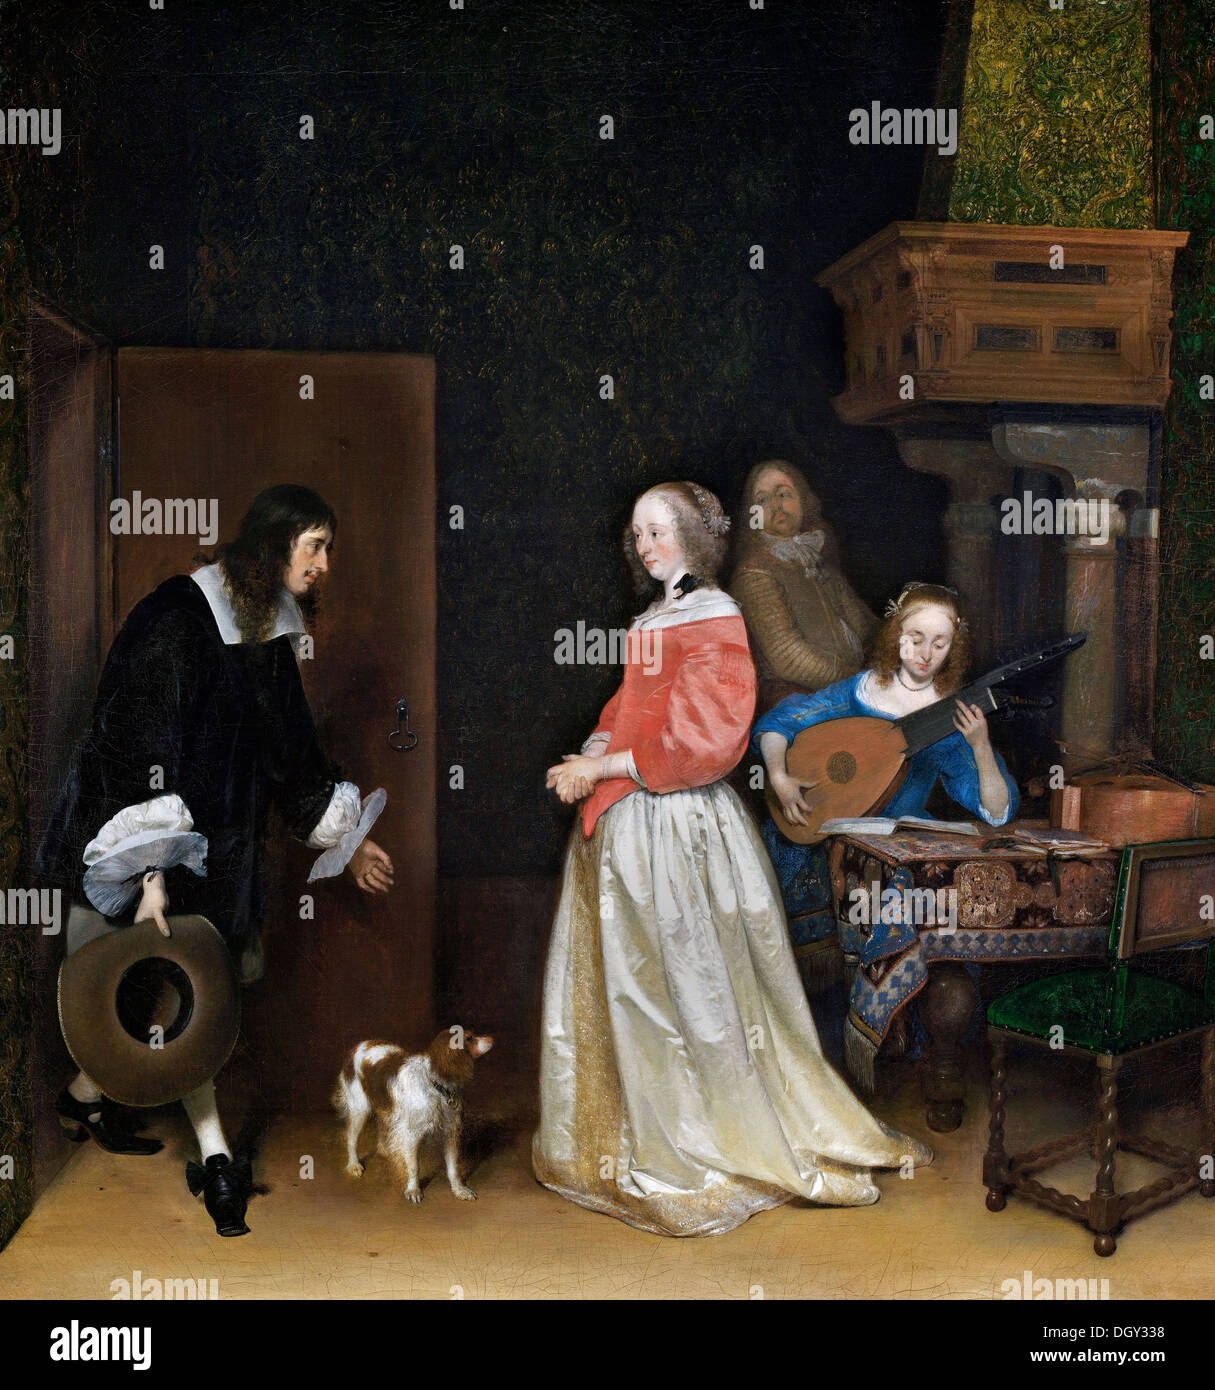 Gerard ter Borch, The Suitor's Visit. Circa 1658. Oil on canvas. National Gallery of Art, Washington, D.C. Stock Photo